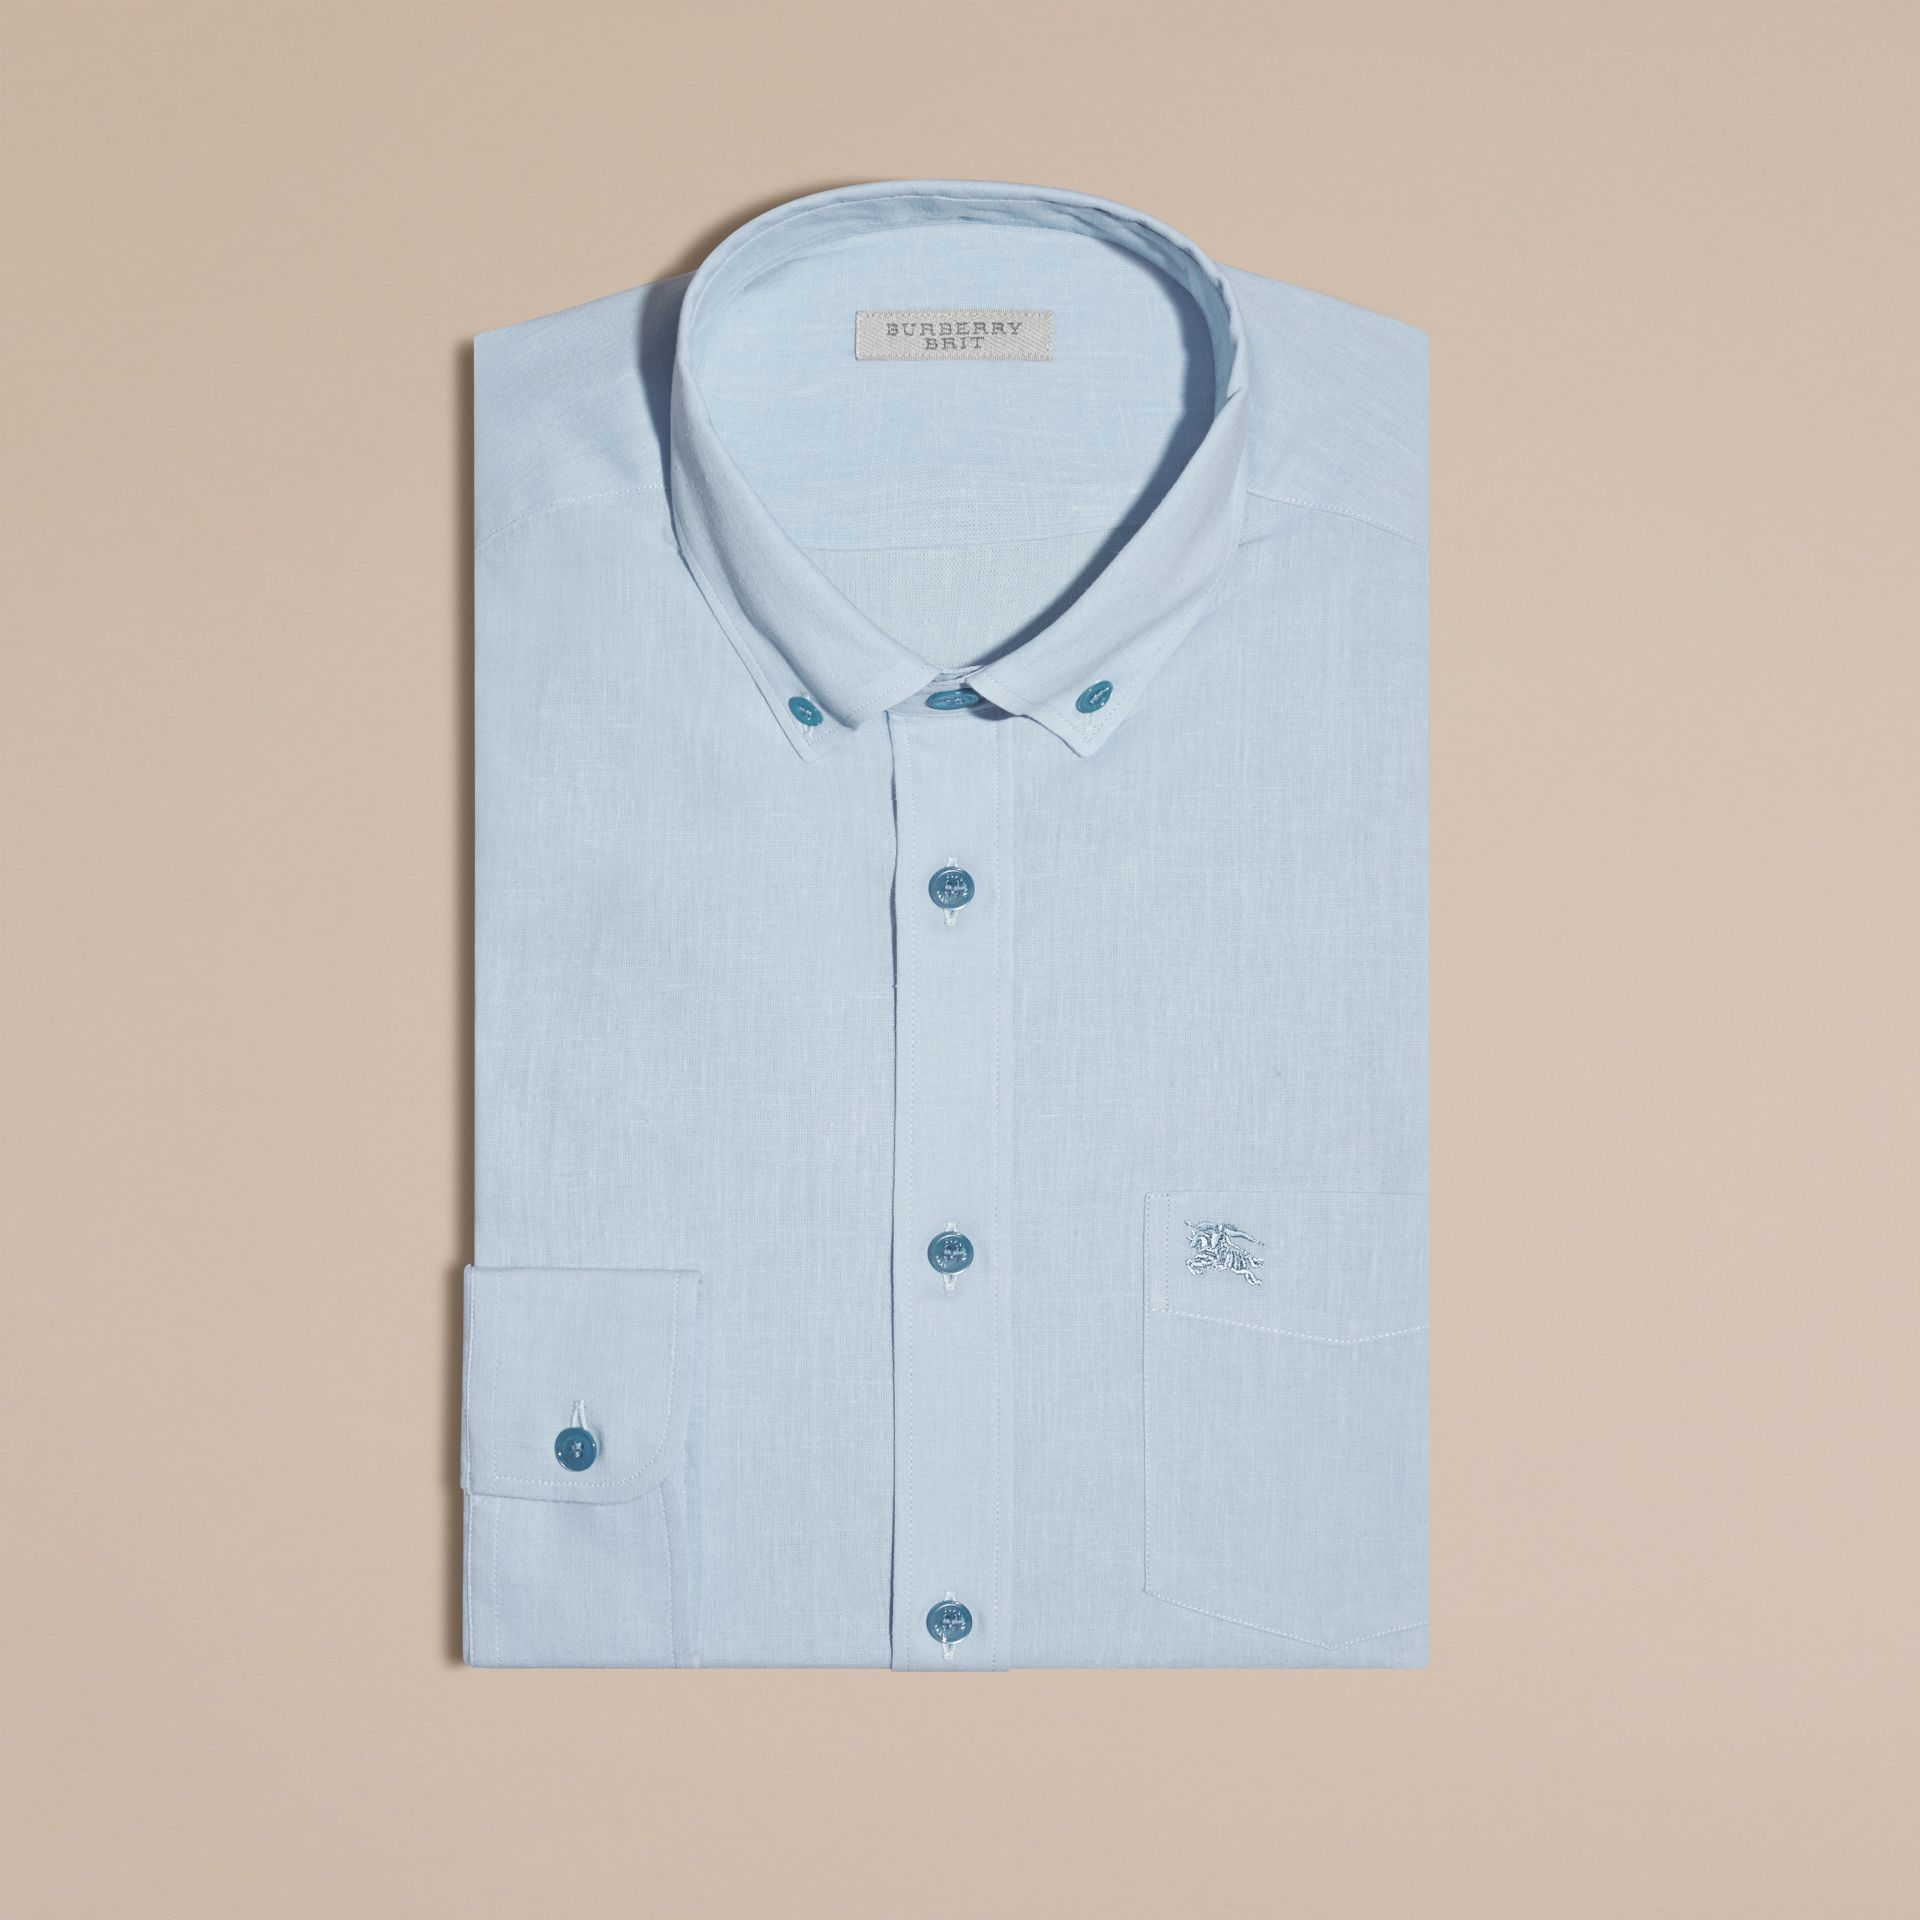 Pale blue Button-down Collar Cotton Linen Shirt Pale Blue - gallery image 4